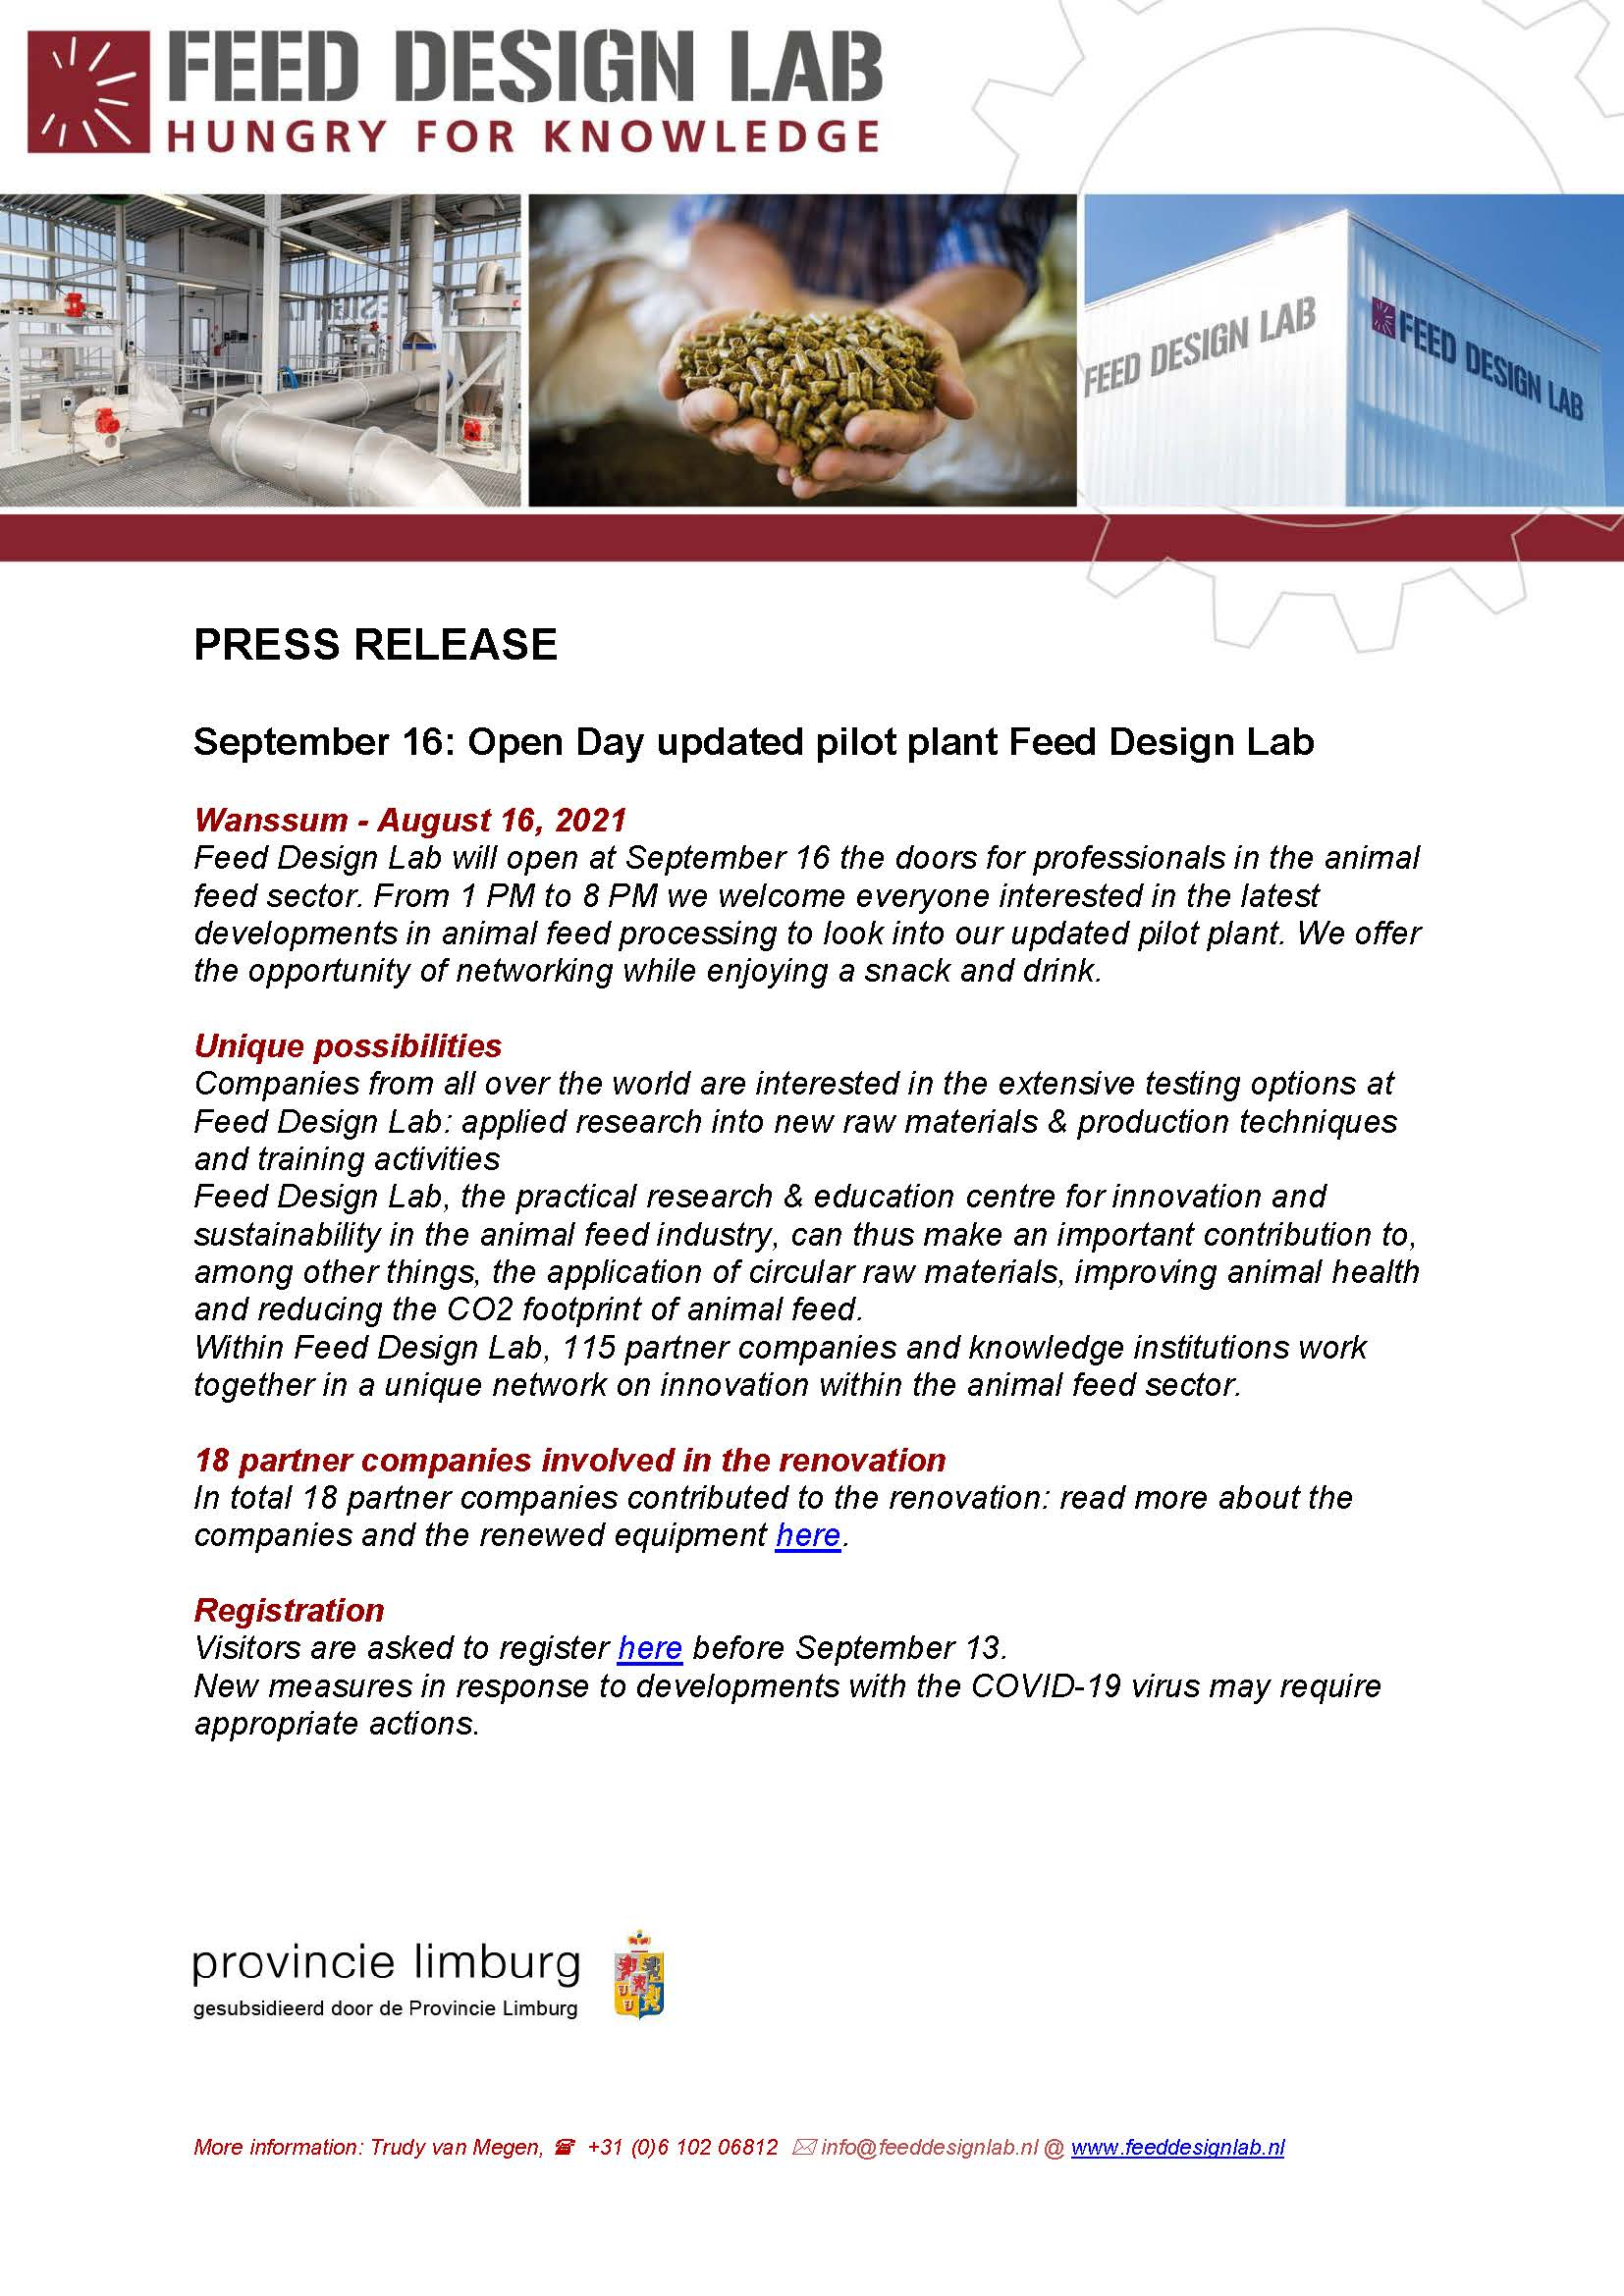 Let's meet at the Feed Design Lab!